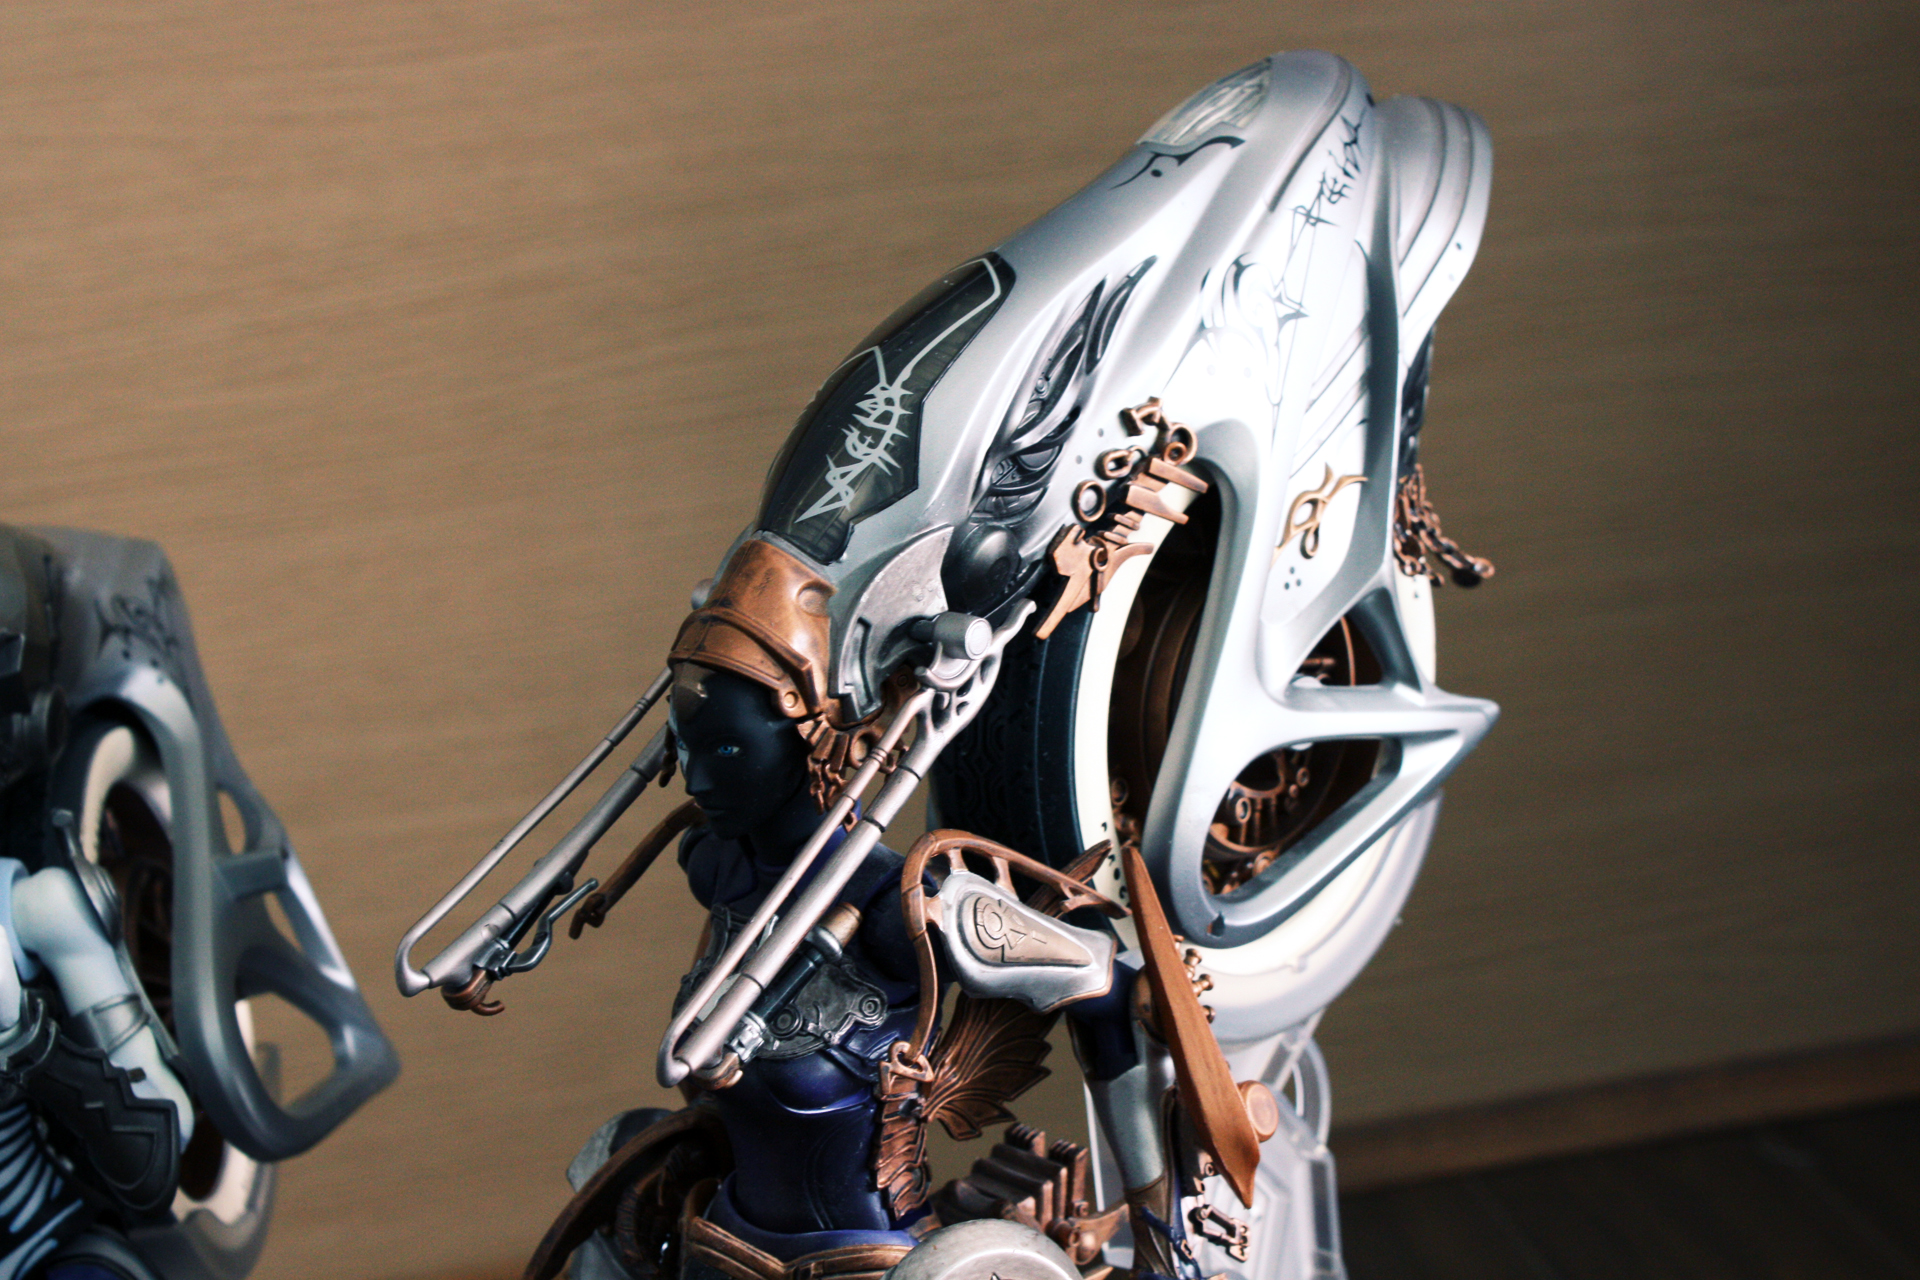 square_enix play_arts_kai ooparts nyx styria final_fantasy_xiii